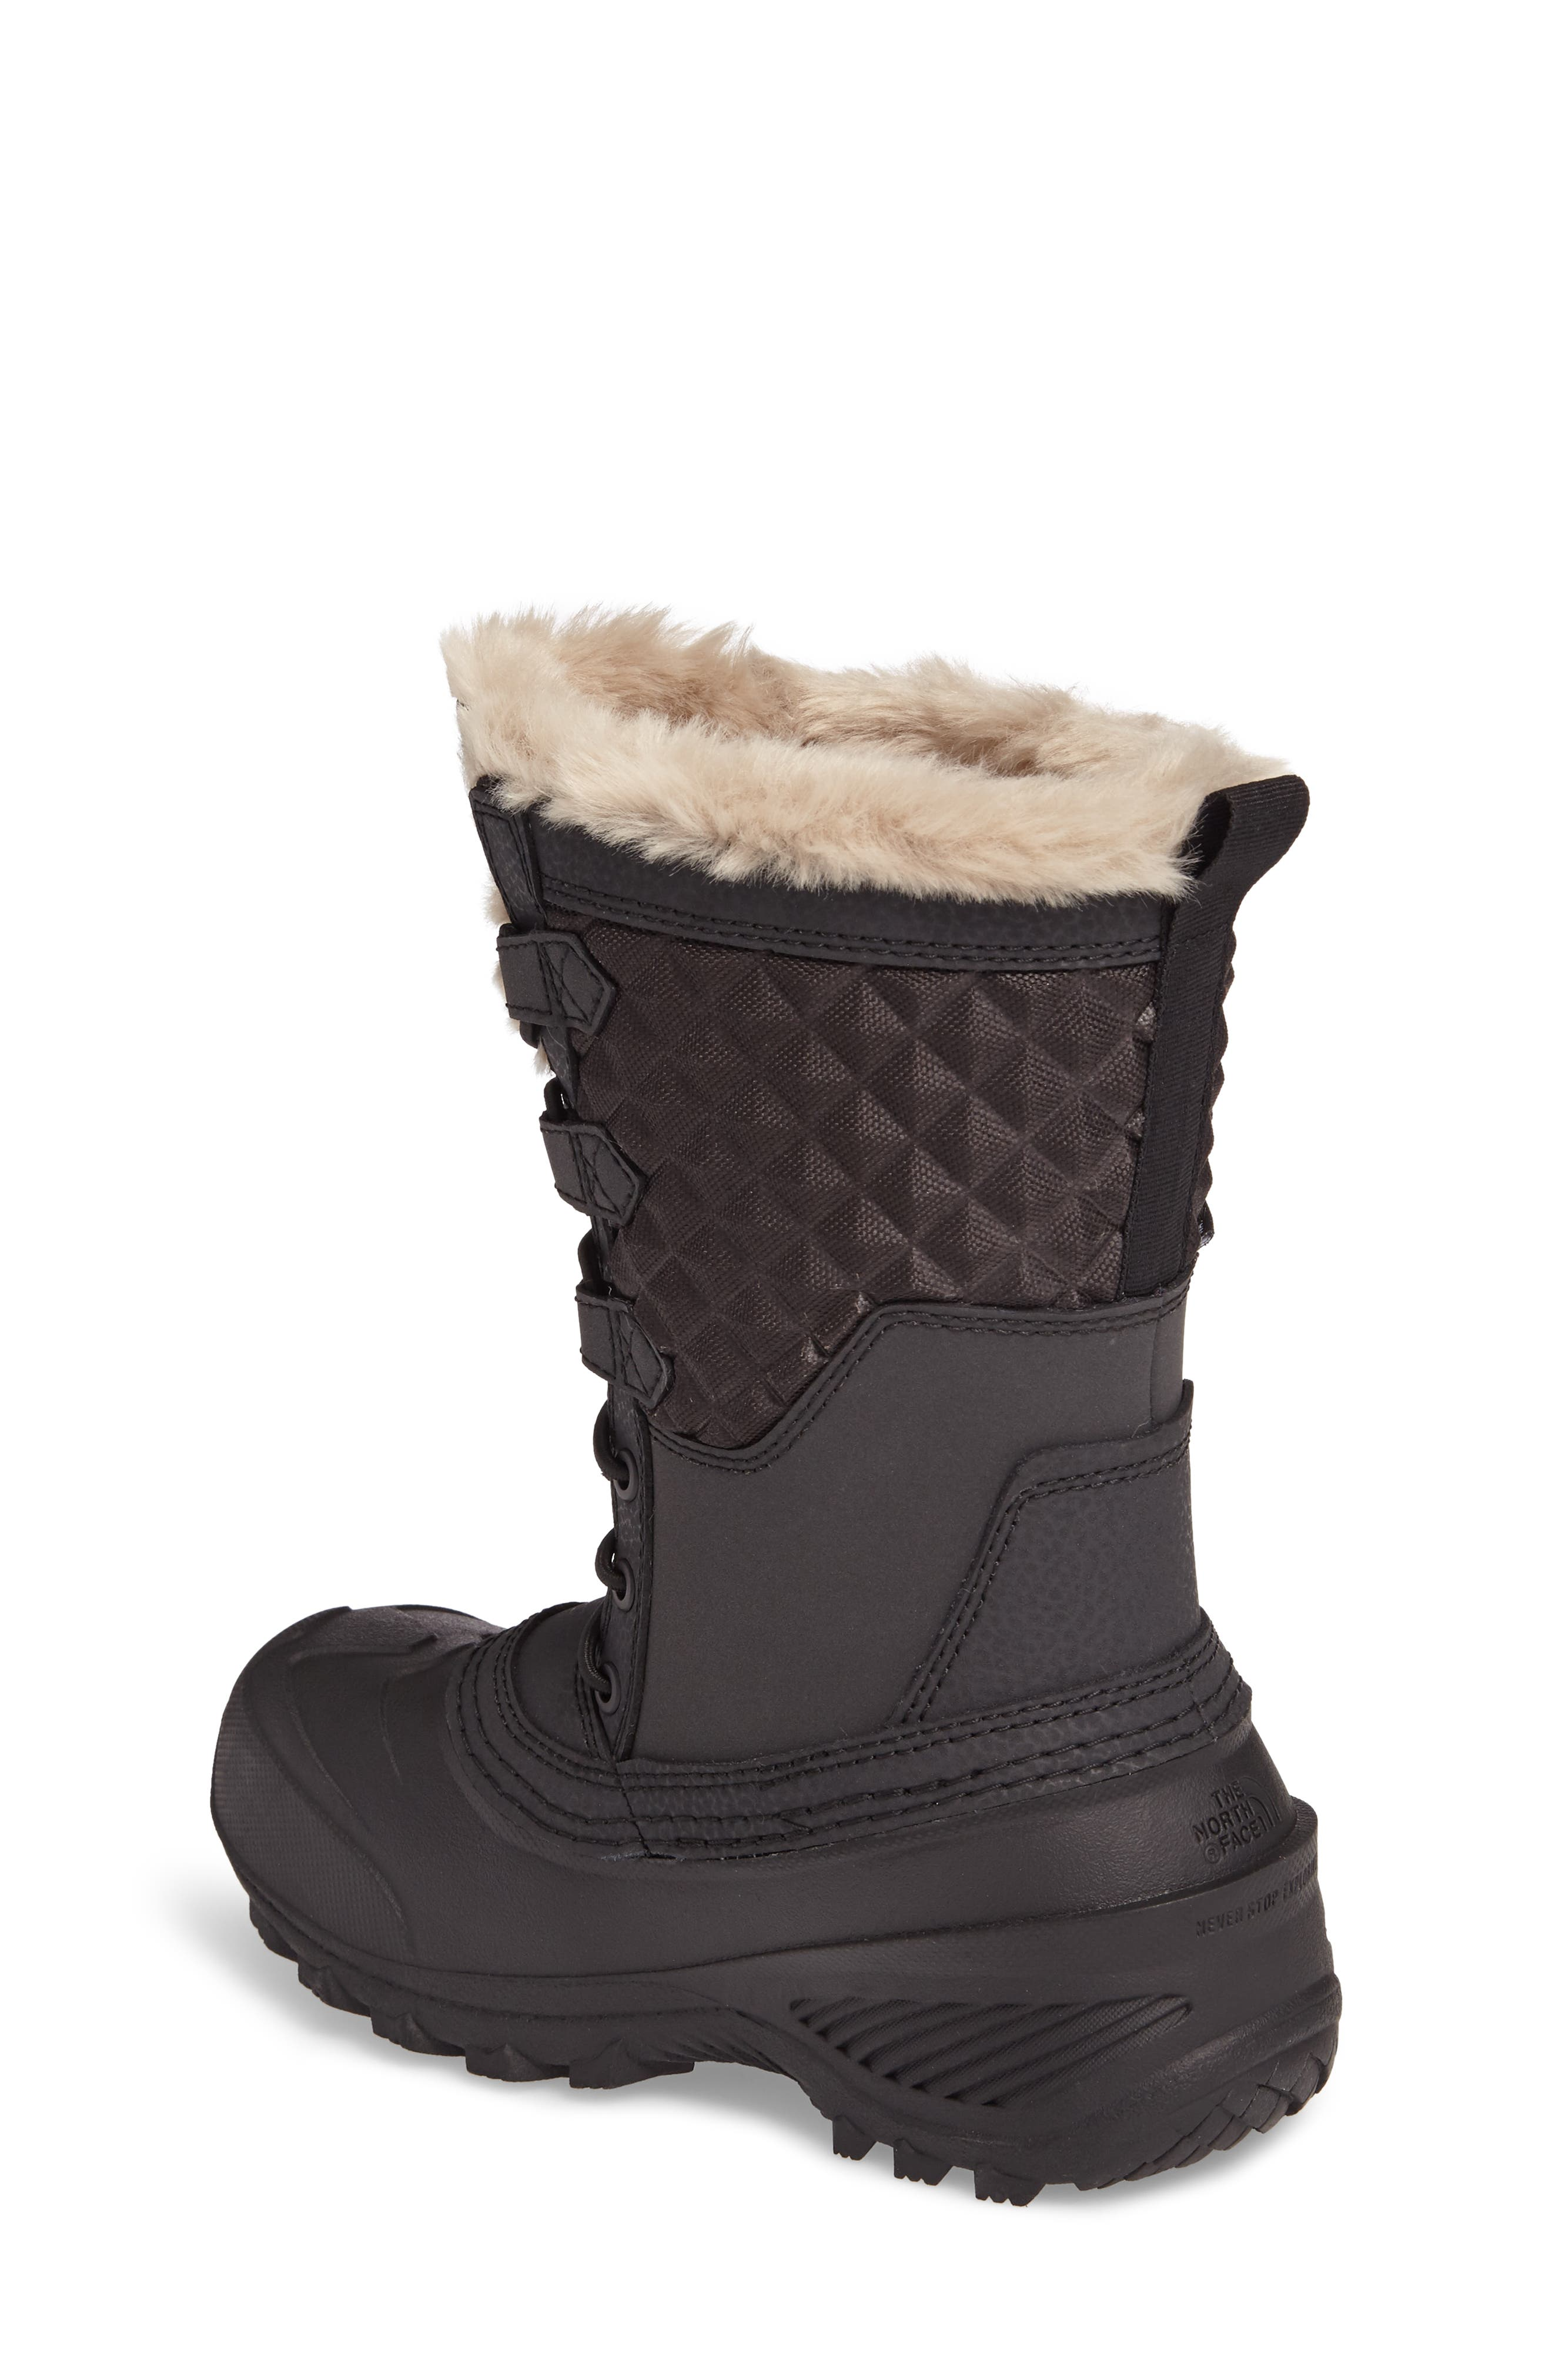 Alternate Image 2  - The North Face Shellista Lace III Faux Fur Waterproof Boot (Toddler, Little Kid & Big Kid)